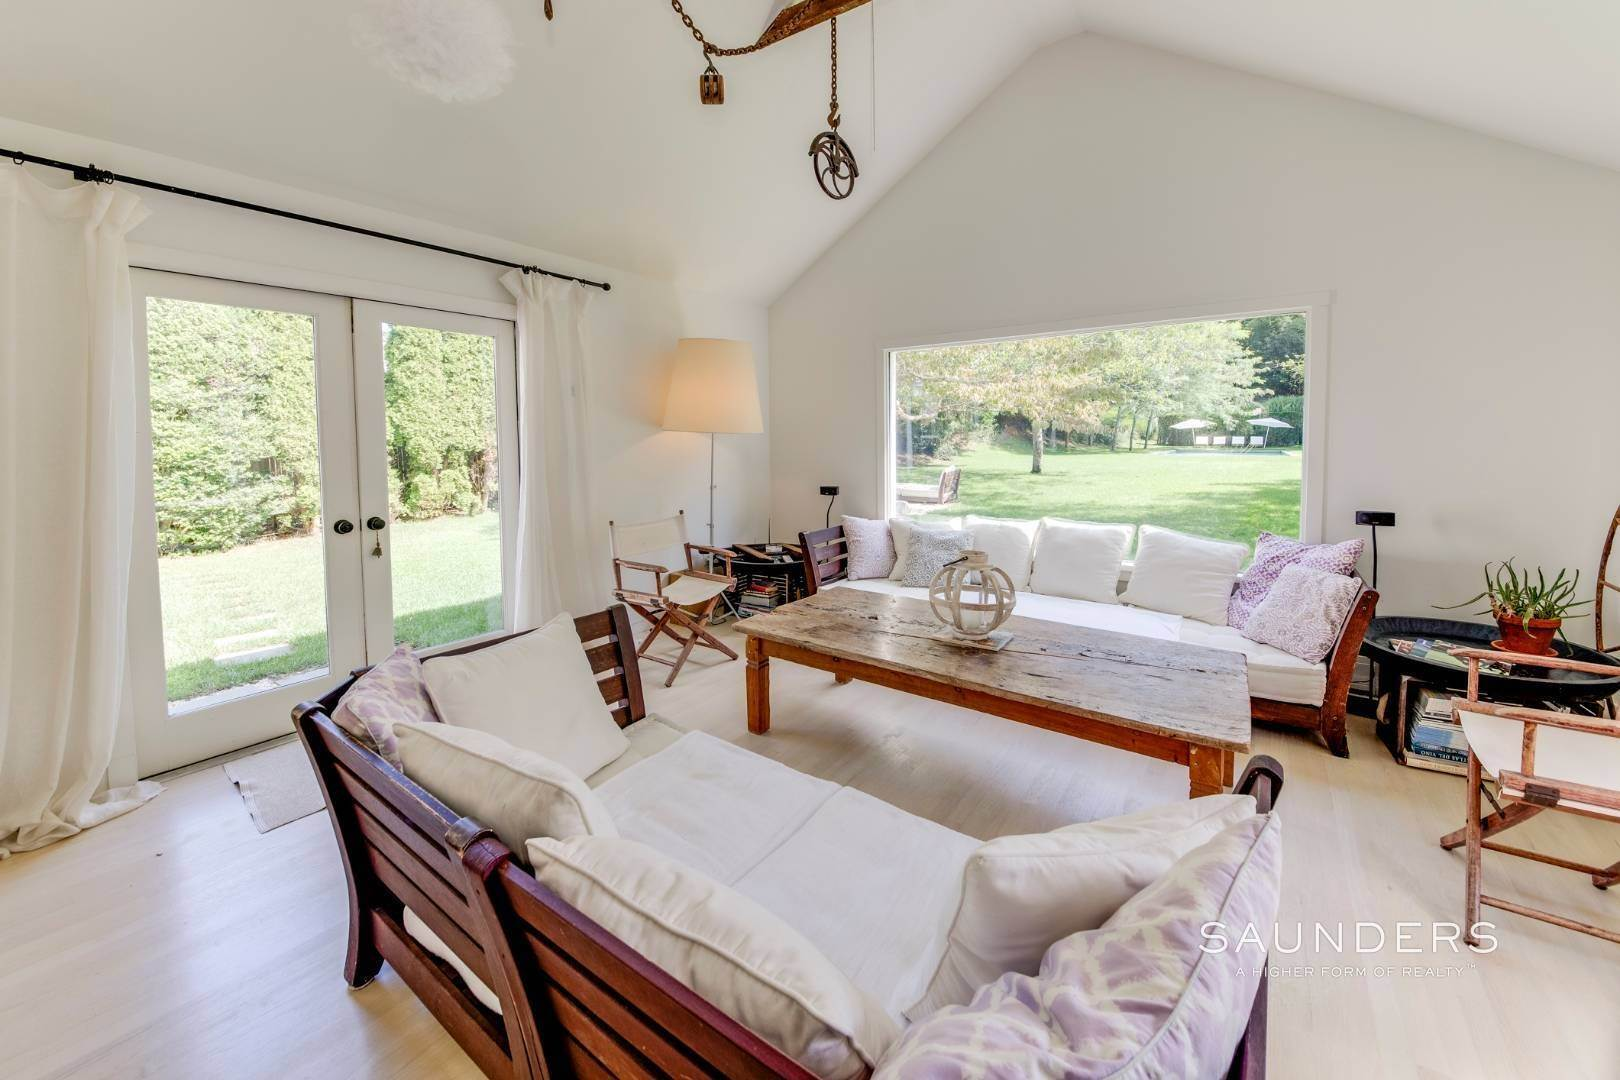 8. Single Family Homes for Sale at South Of Highway - Turnkey Charmer 136 Cove Hollow Road, East Hampton, East Hampton Town, NY 11937